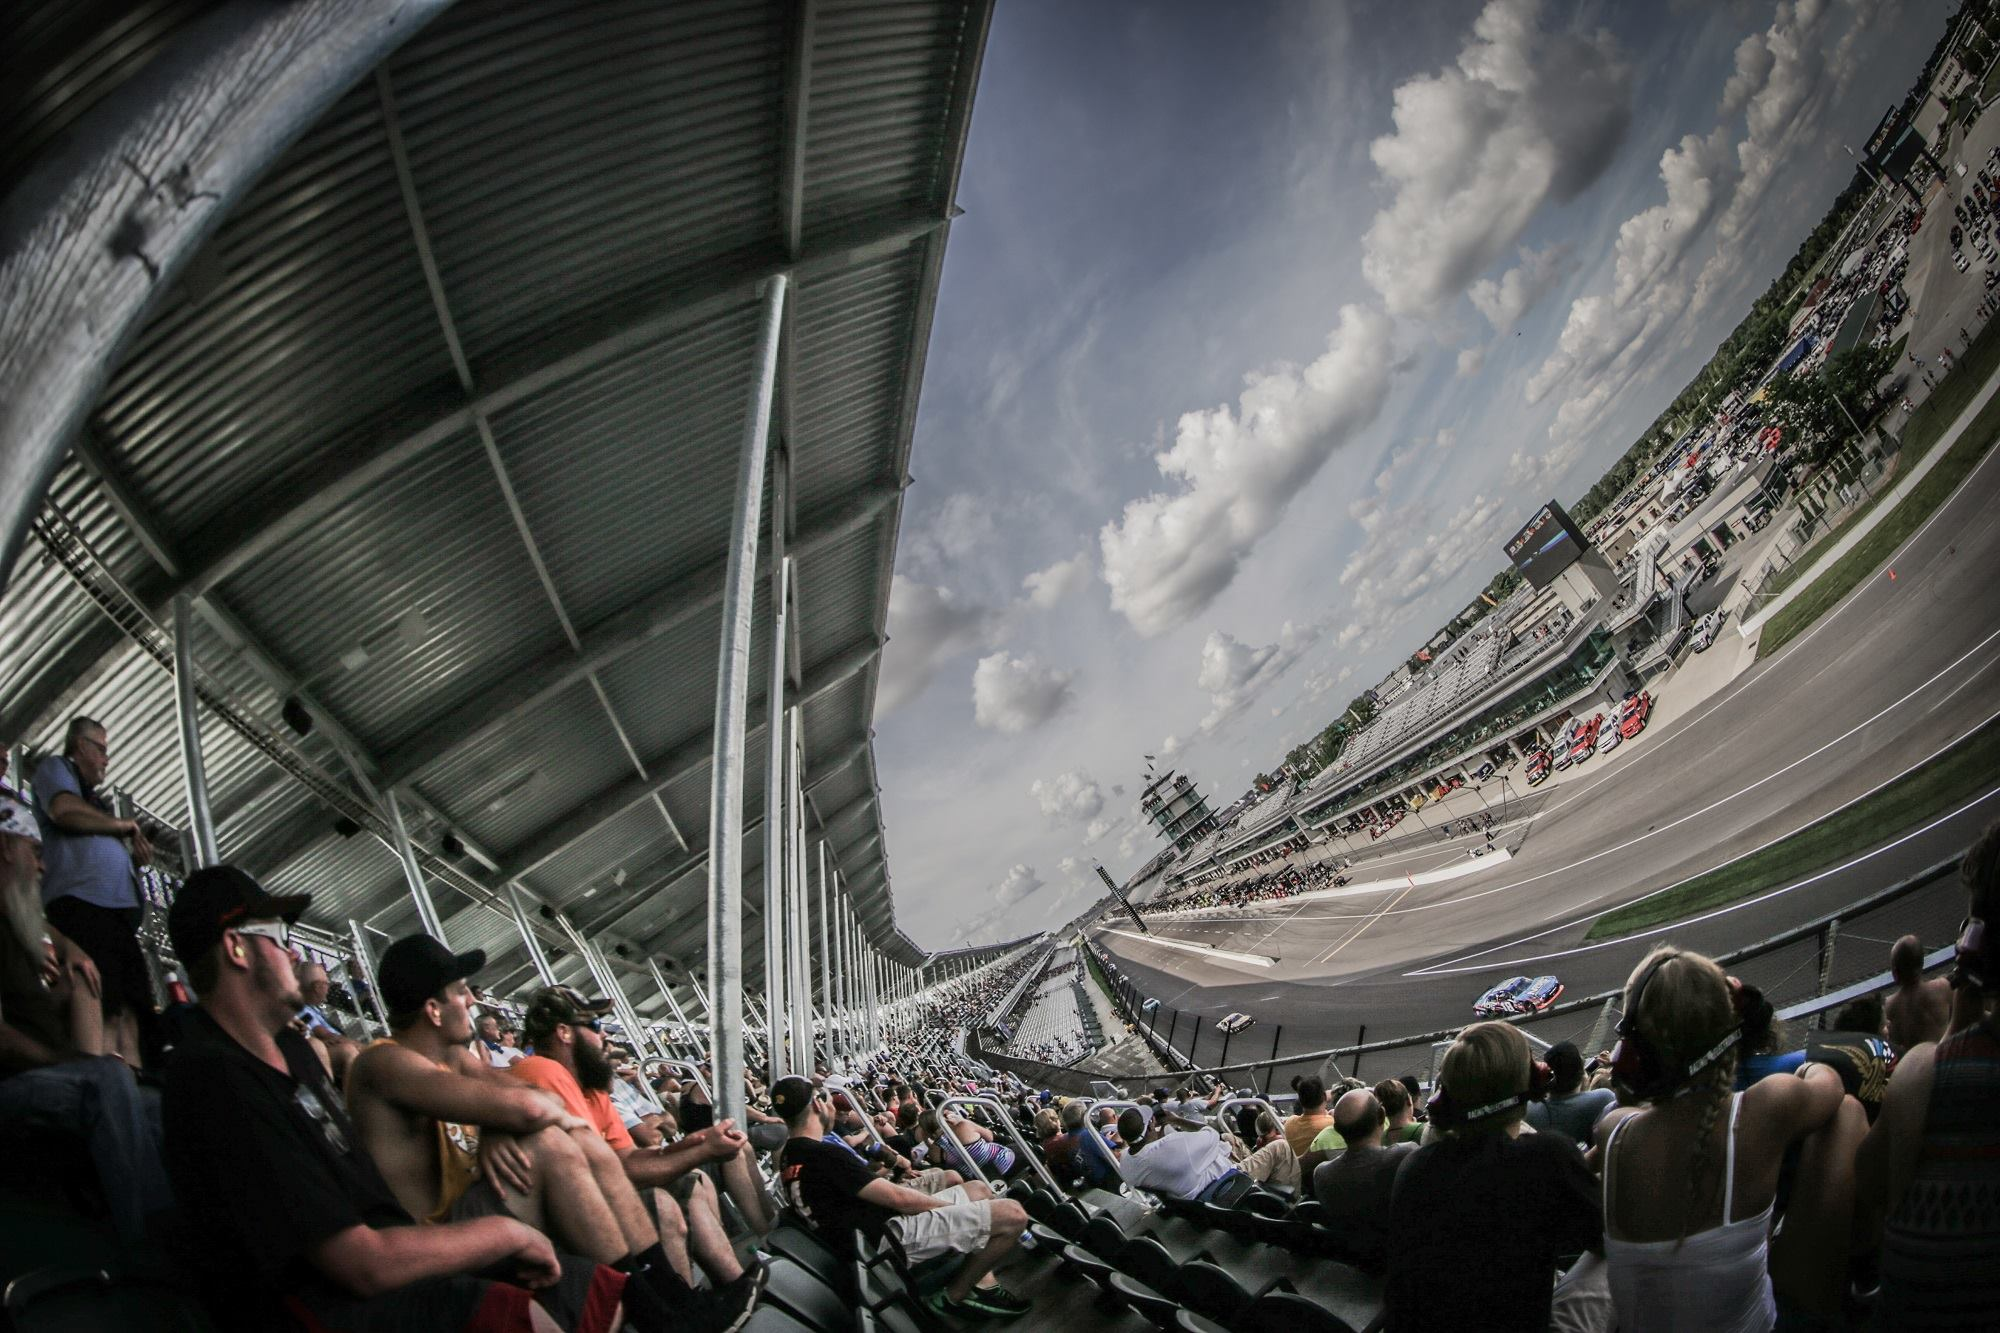 Indianapolis Motor Speedway fans hit by golf Cart